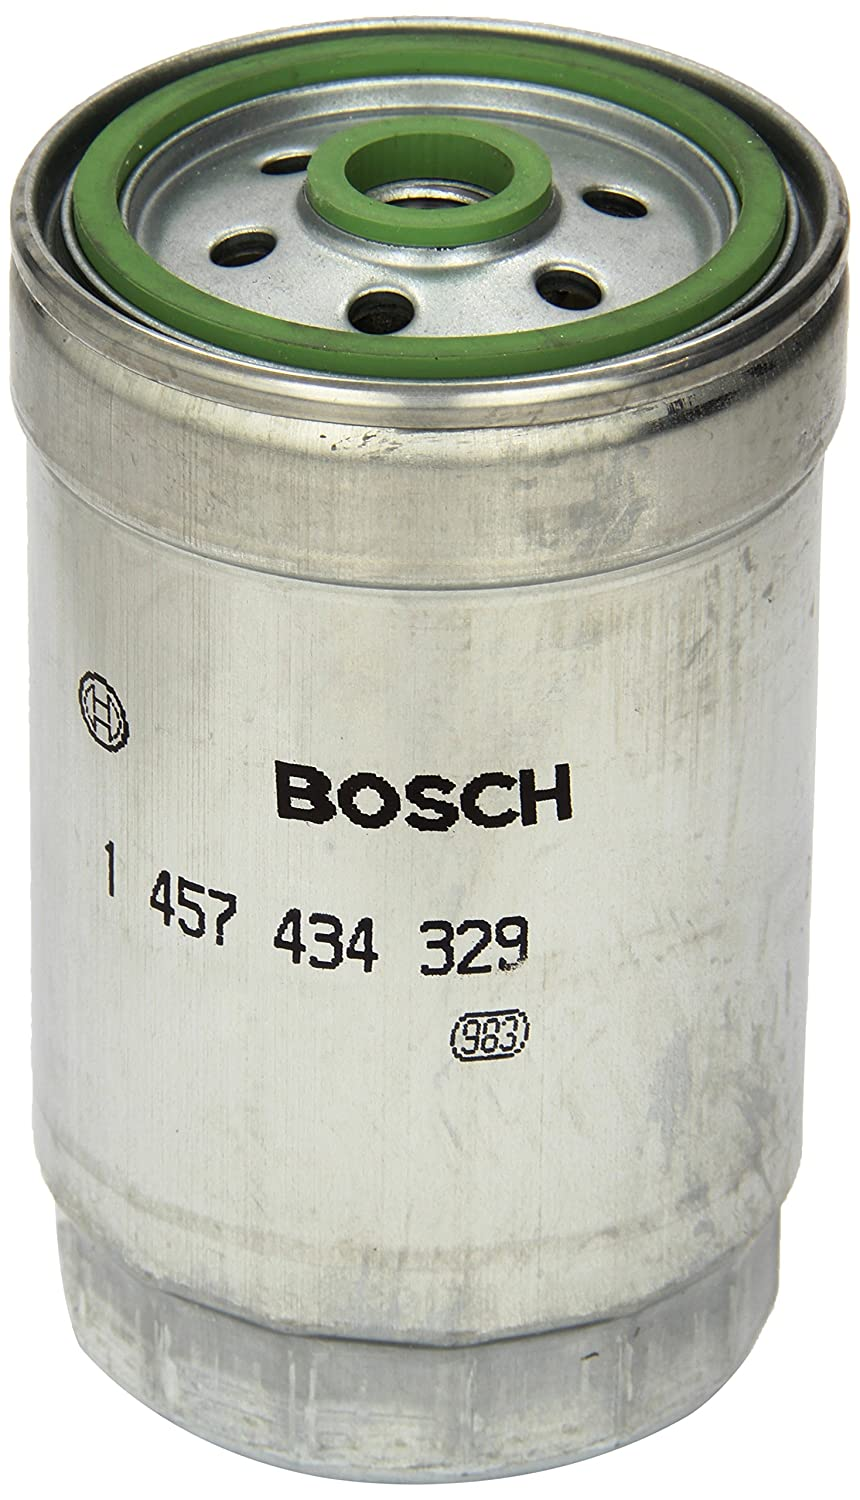 Bosch 1 457 434 329 Filtro Combustible 1457434329